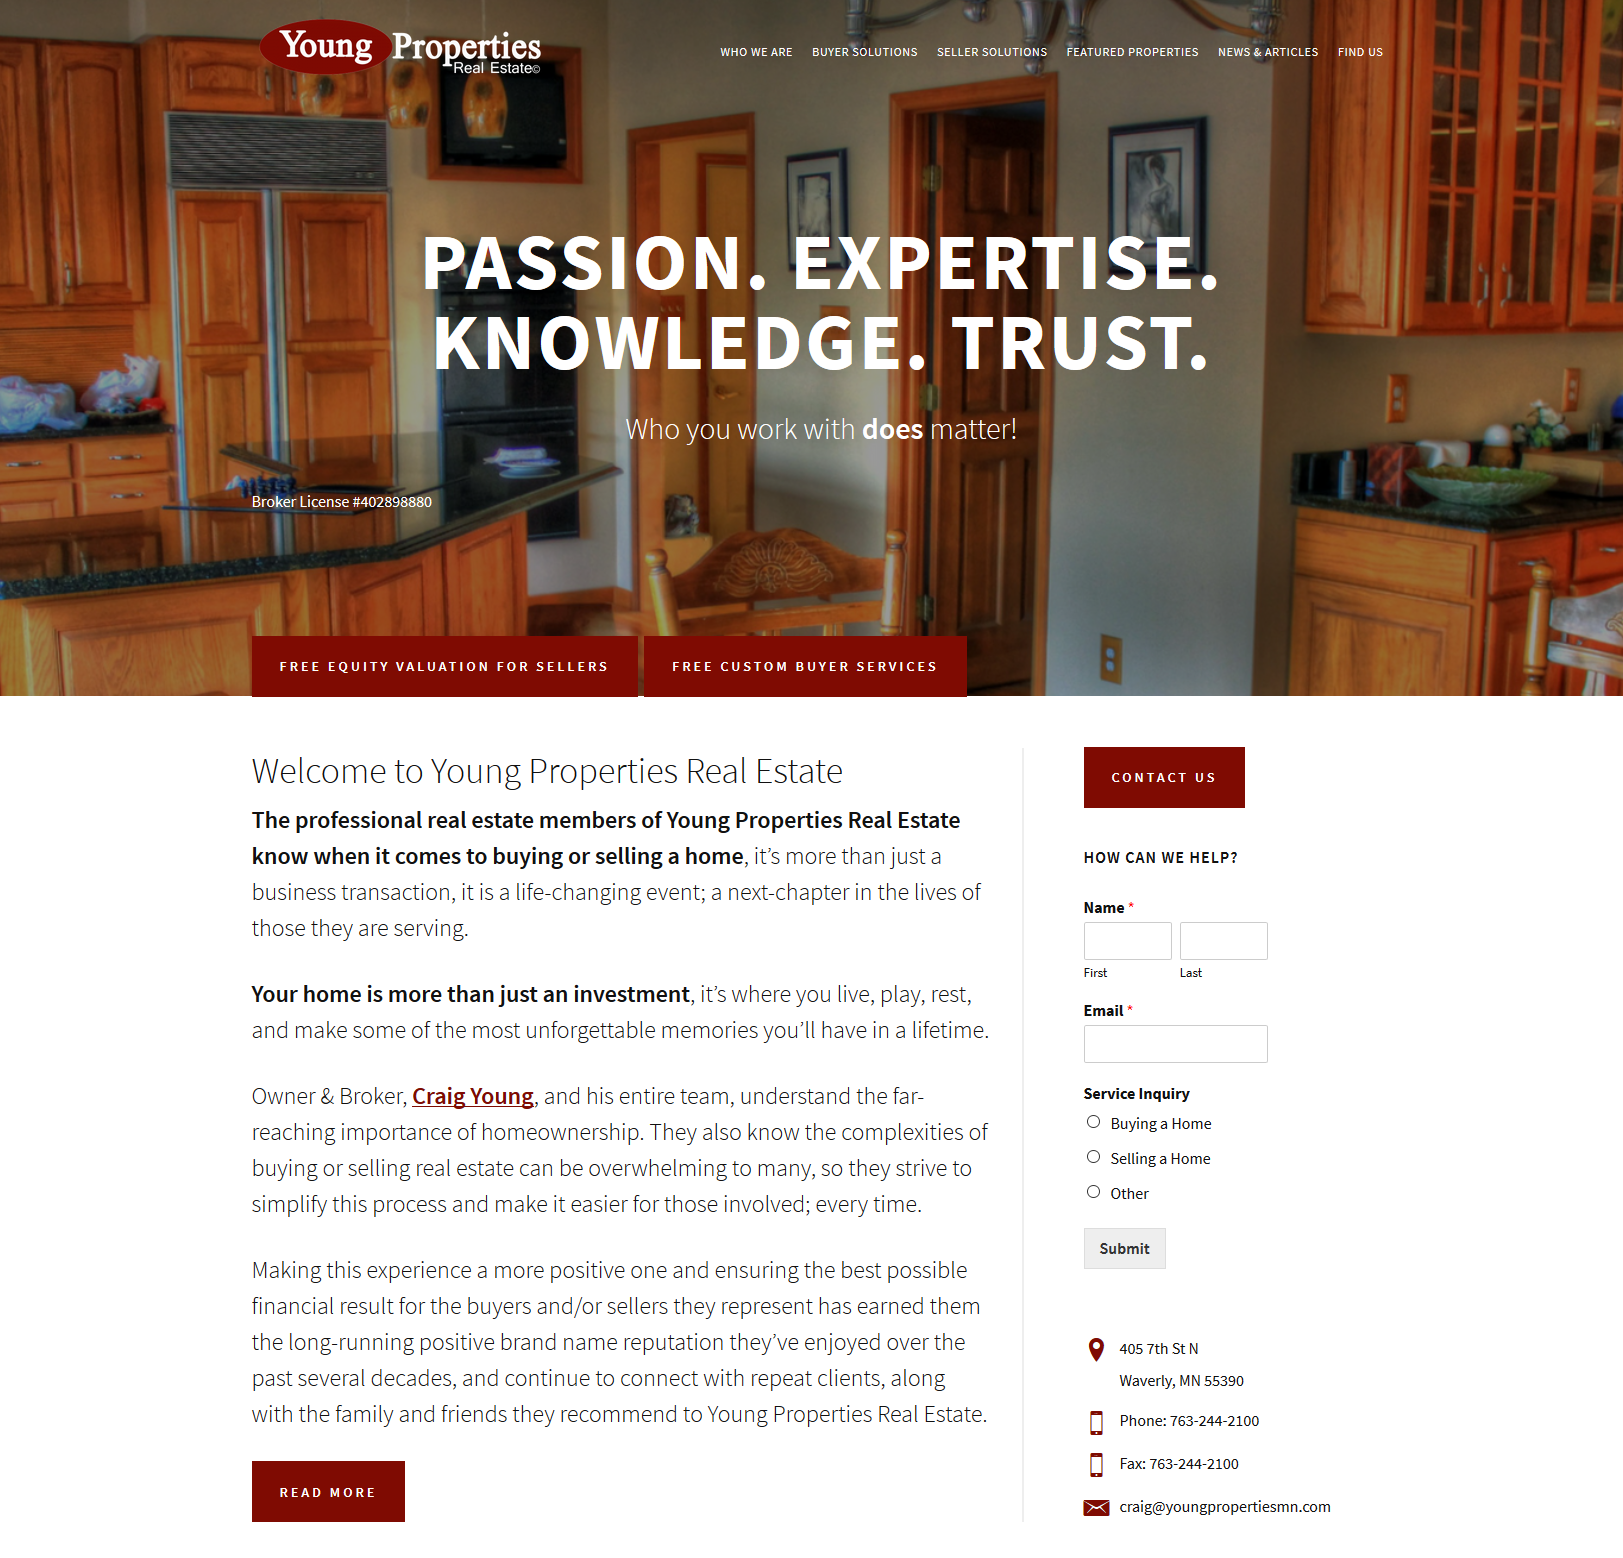 Young Properties Real Estate website design